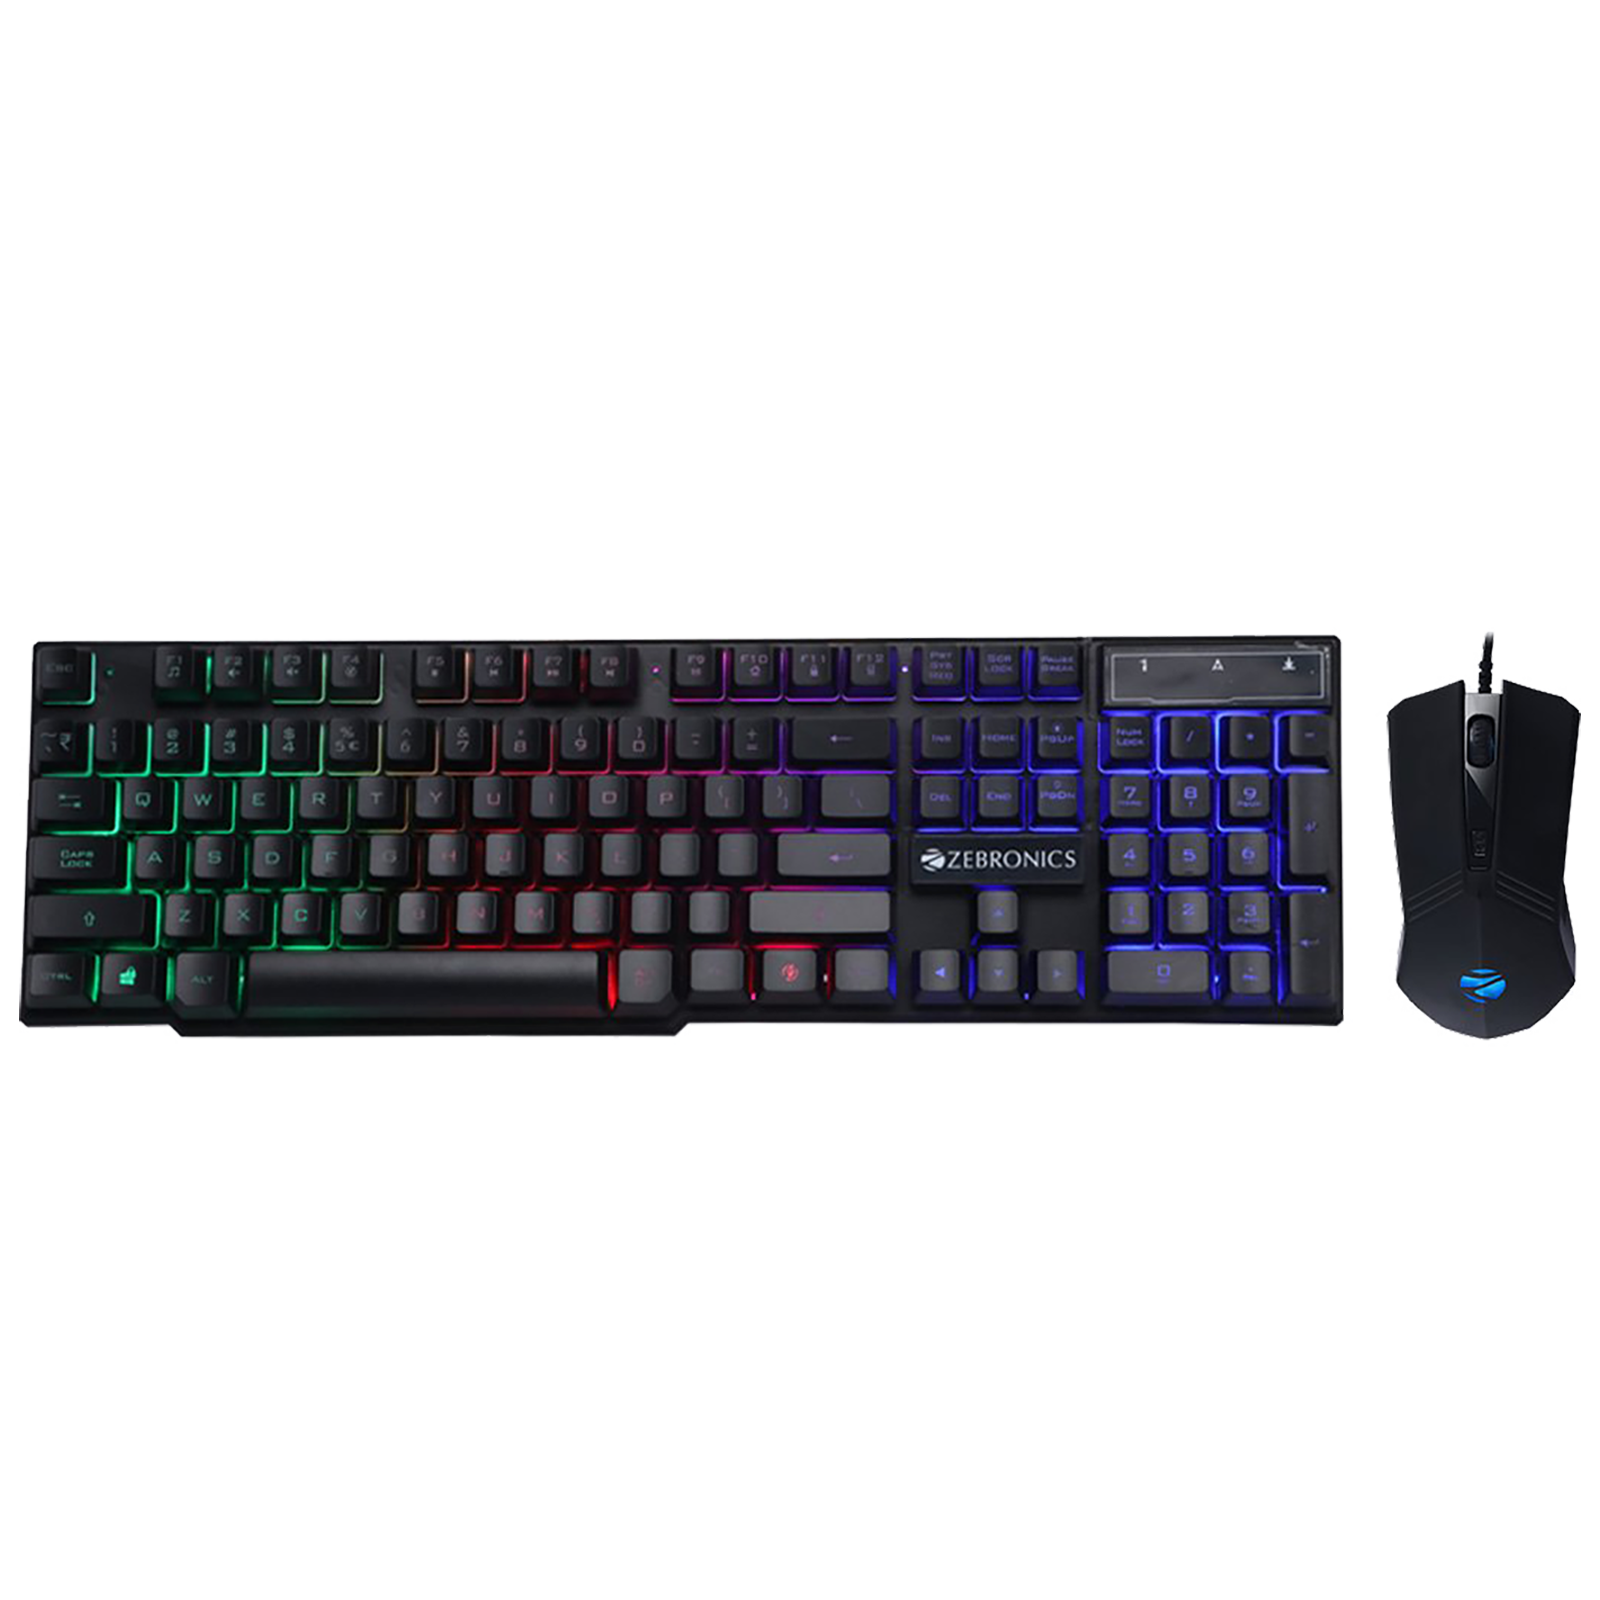 Zebronics USB Optical Keyboard & Mouse Combo (Braided Cable, Fighter, Black)_1